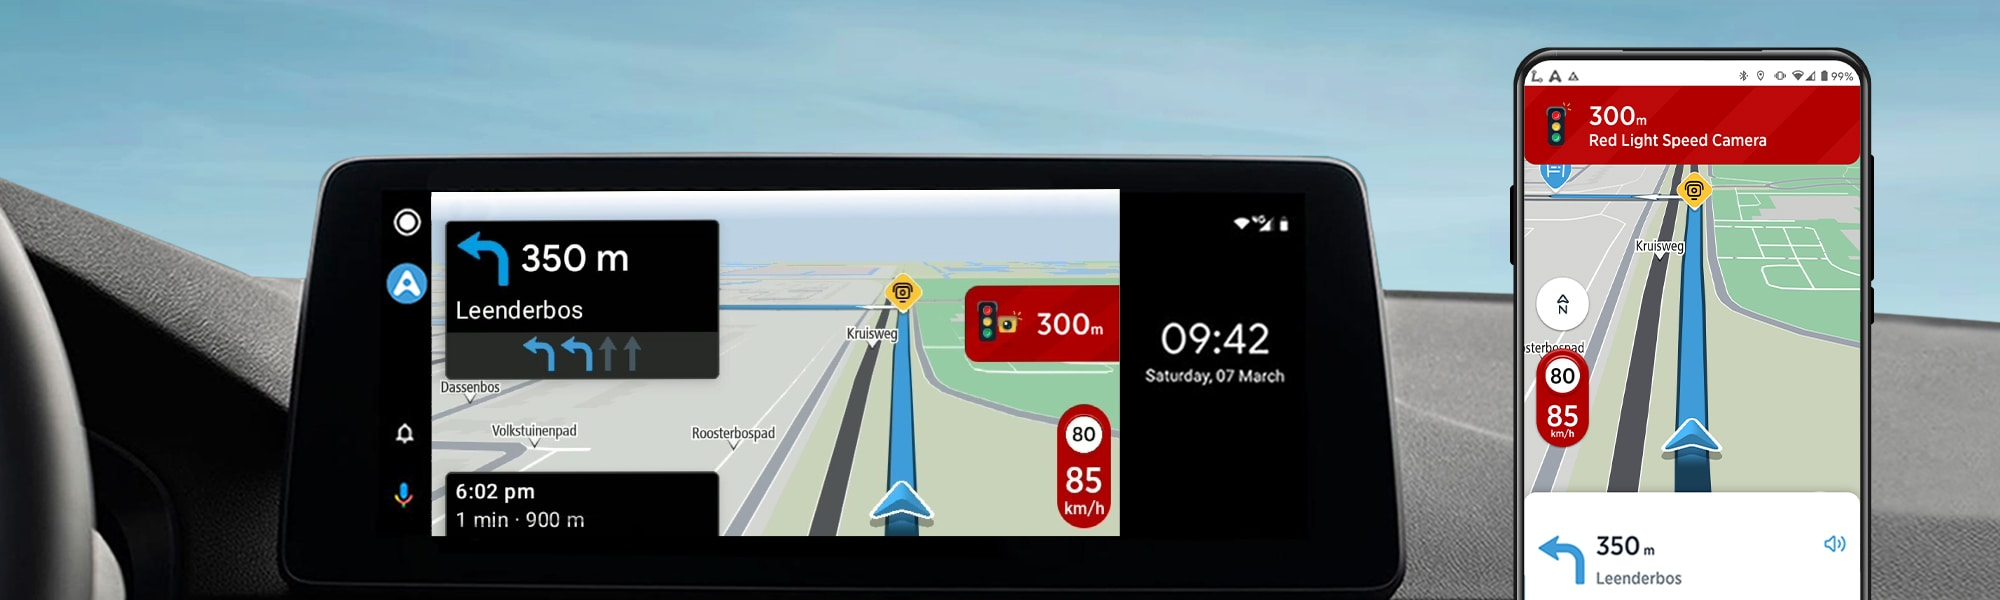 Bigger, better app navigation has arrived: Announcing TomTom AmiGO for Android Auto